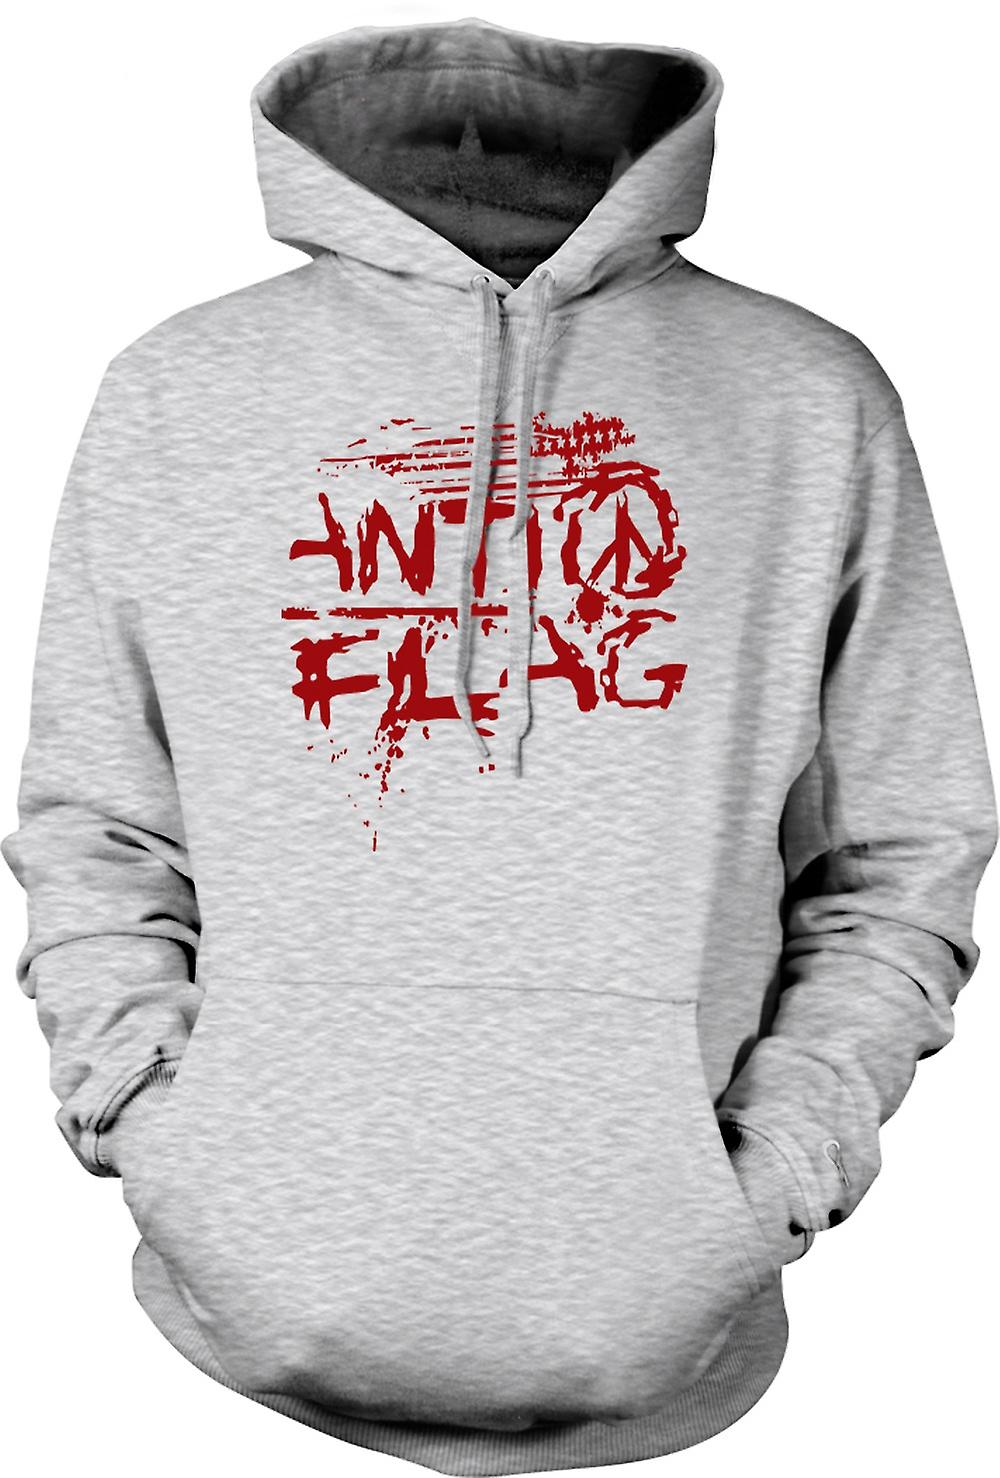 Herren Hoodie - Anti - Flag - US - Punk Rock Band - Anarchy